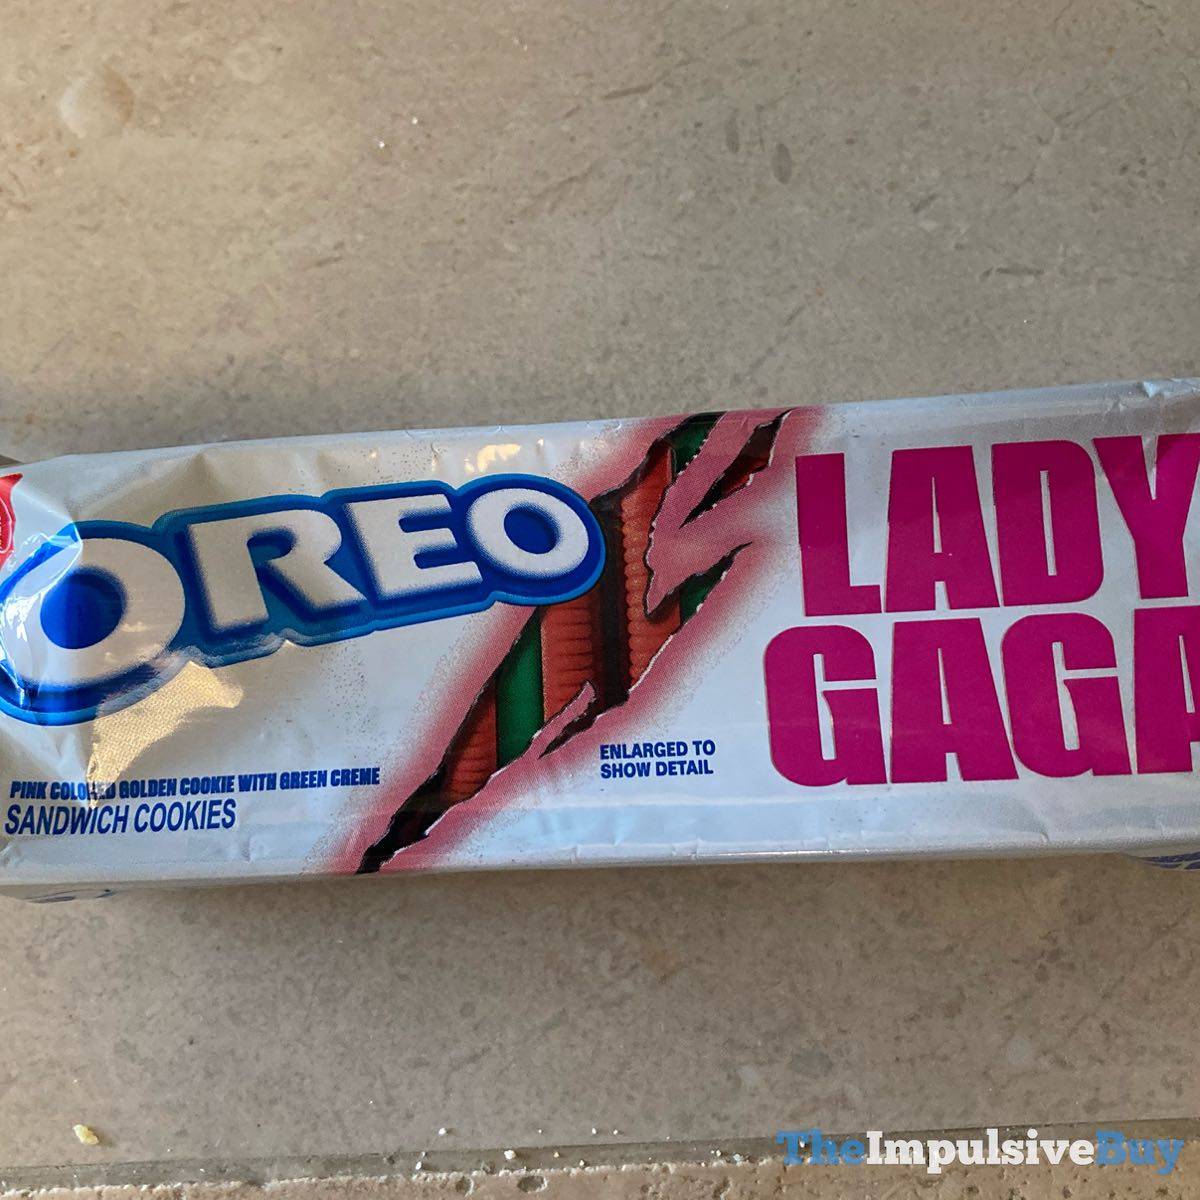 SPOTTED: Lady Gaga Oreo Cookies - The Impulsive Buy